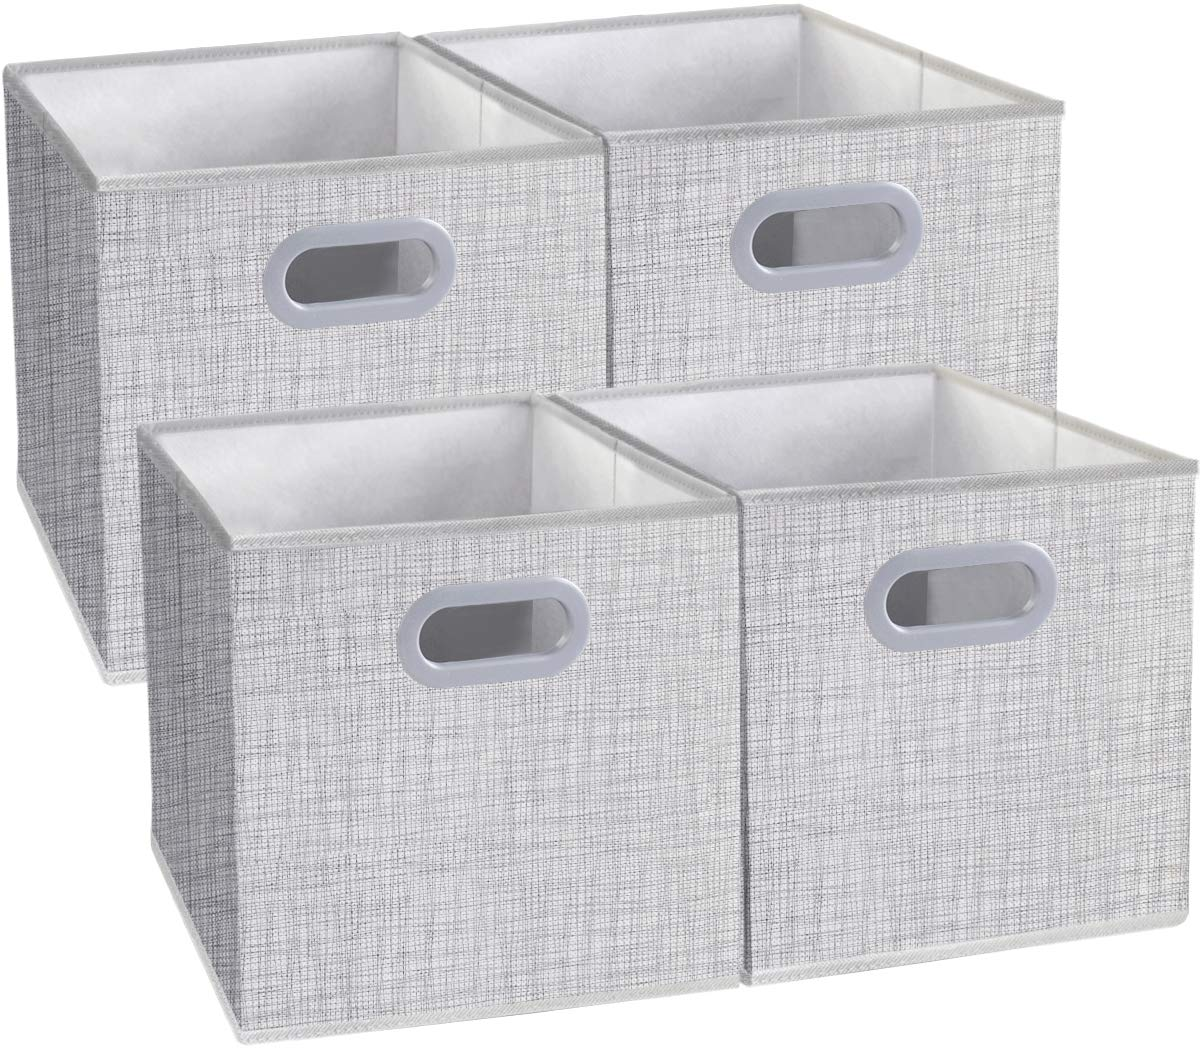 Homyfort Cloth Storage Bins, Foldable Cubes Box Basket Organizer Container Drawers with Dual Plastic Handles for Closet, Bedroom, Toys,Set of 4 White with Pattern 13''x13''x13''